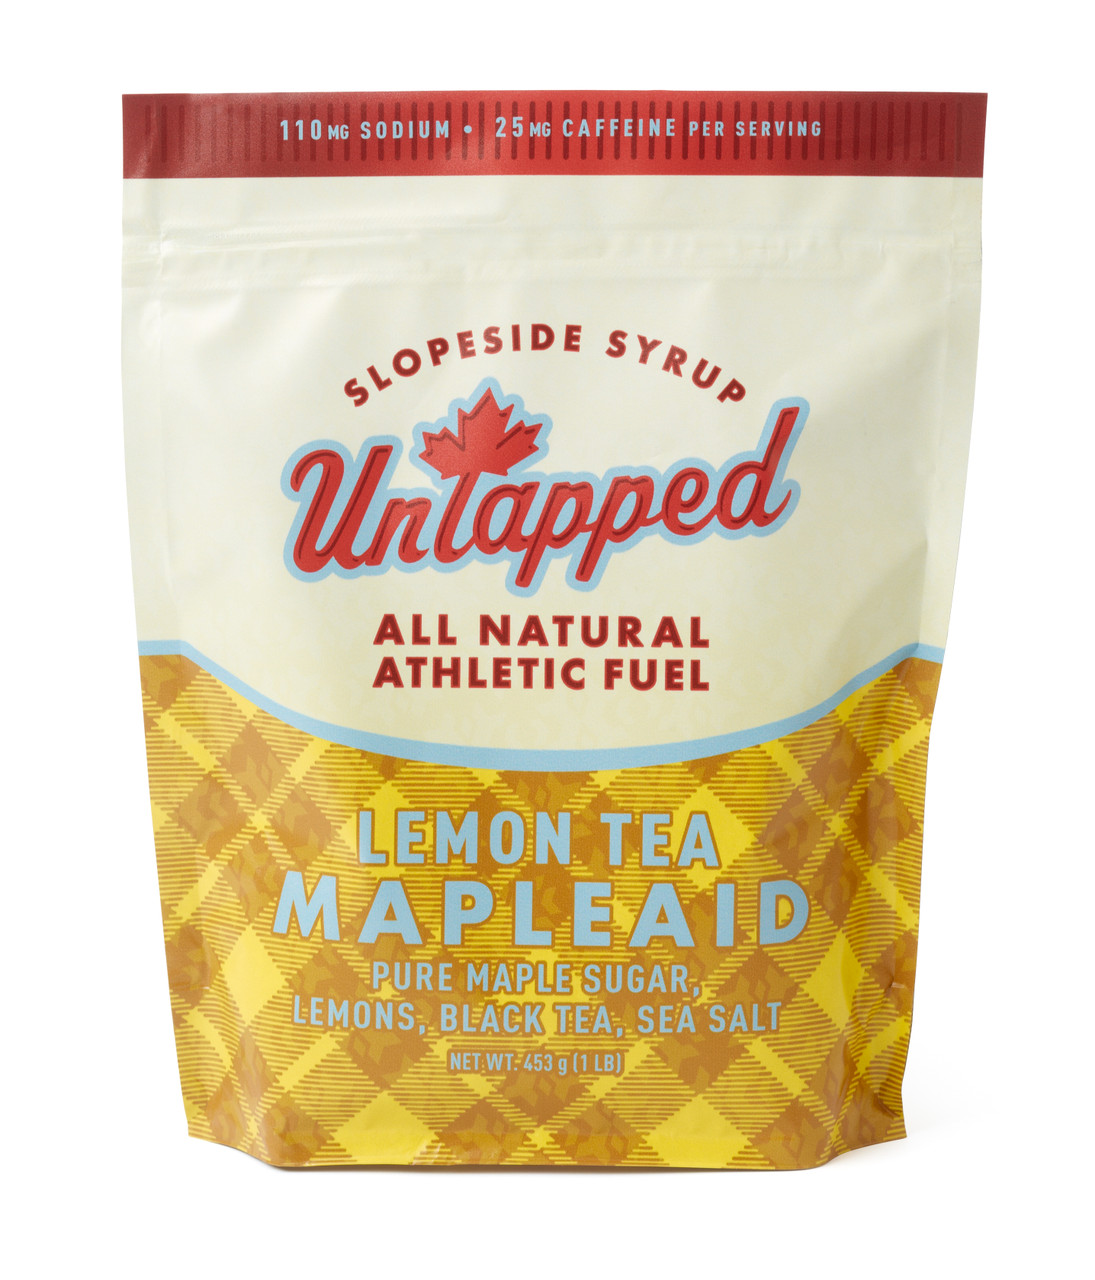 LEMON TEA MAPLEAID EARNS RUNNER'S WORLD GEAR OF THE YEAR!